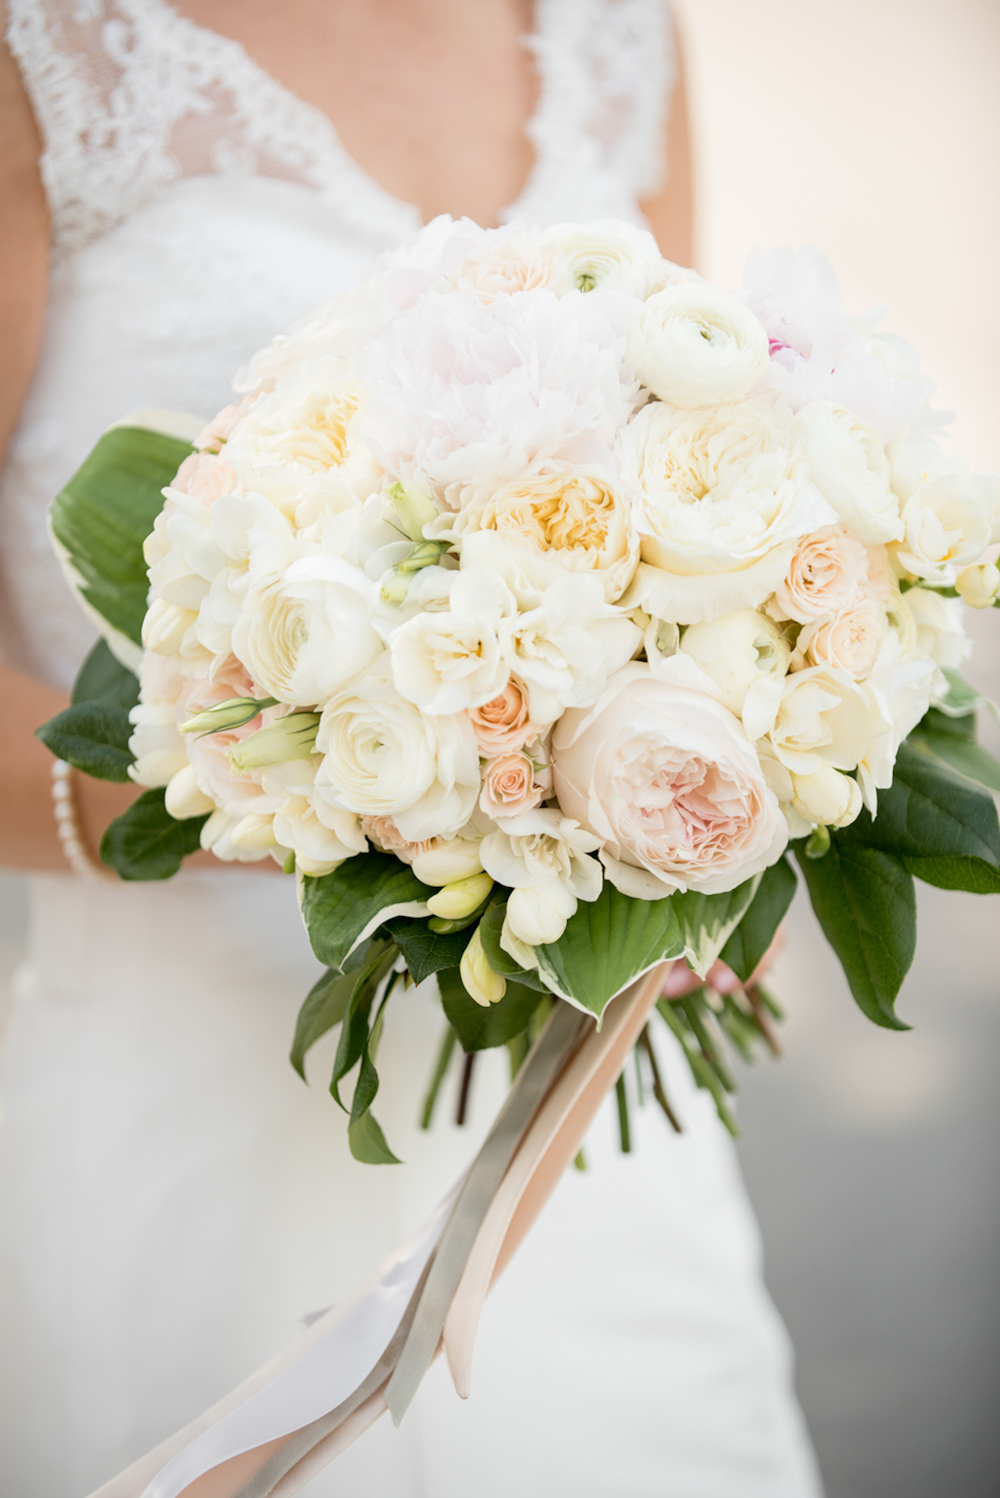 Bridal White Bouquet with a Hint of Blush